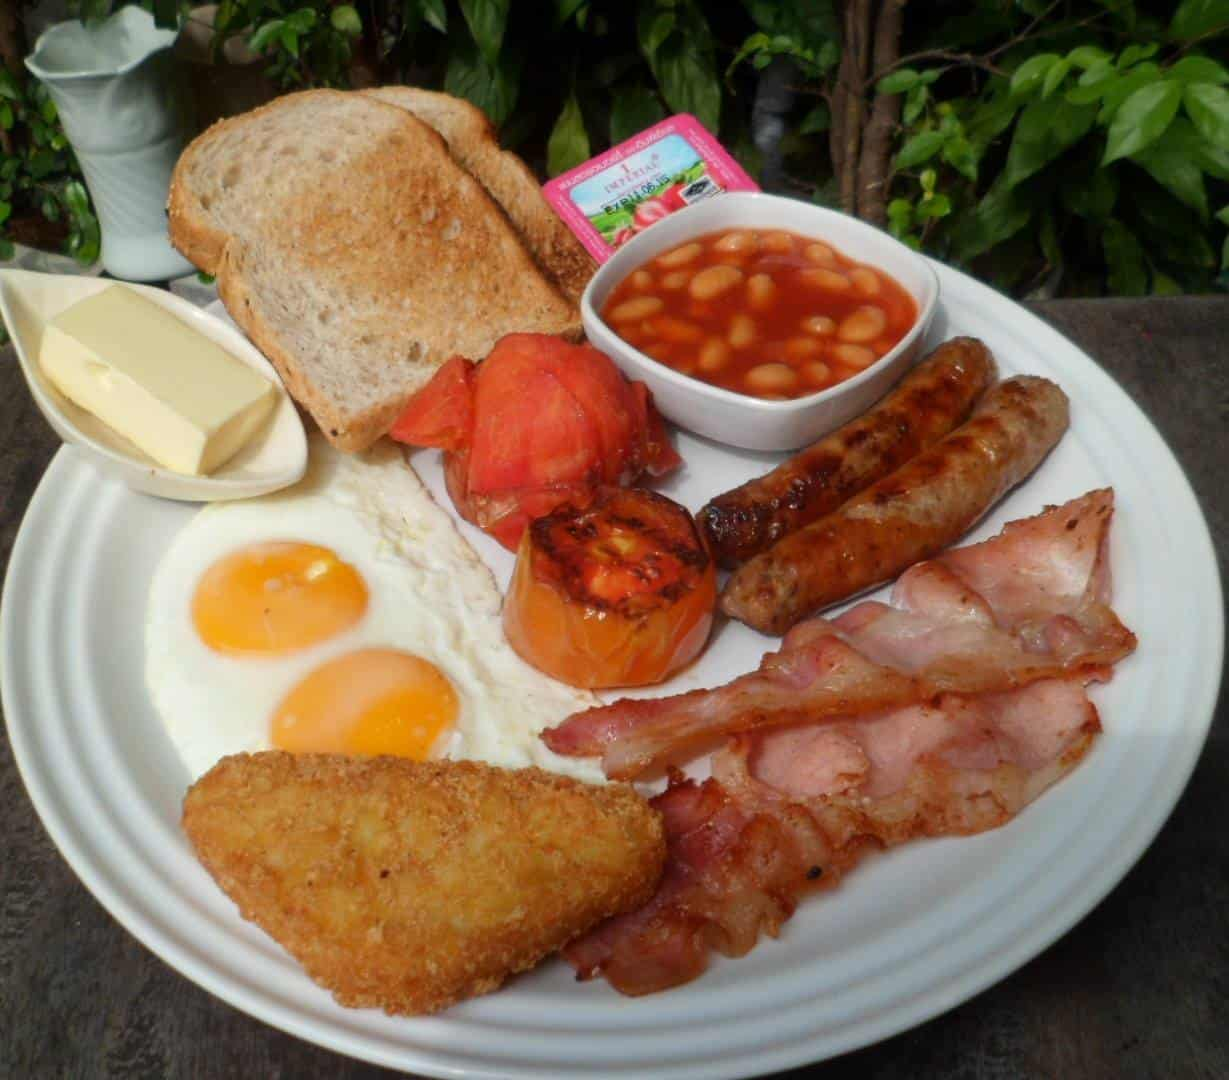 The traditional full English breakfast